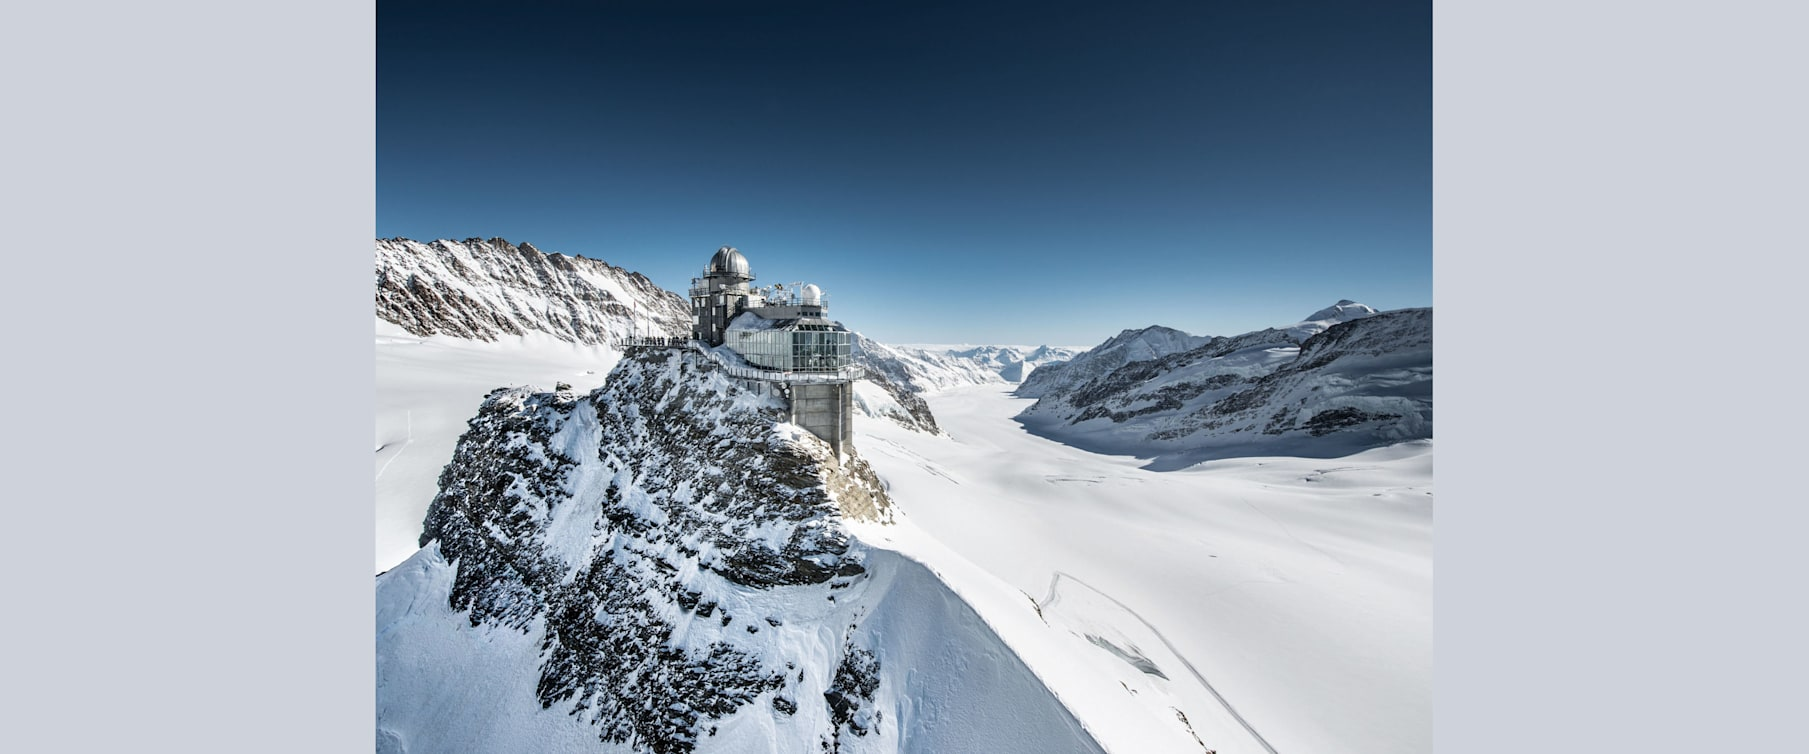 Sphnix aletschgletscher jungfraujoch top of europe